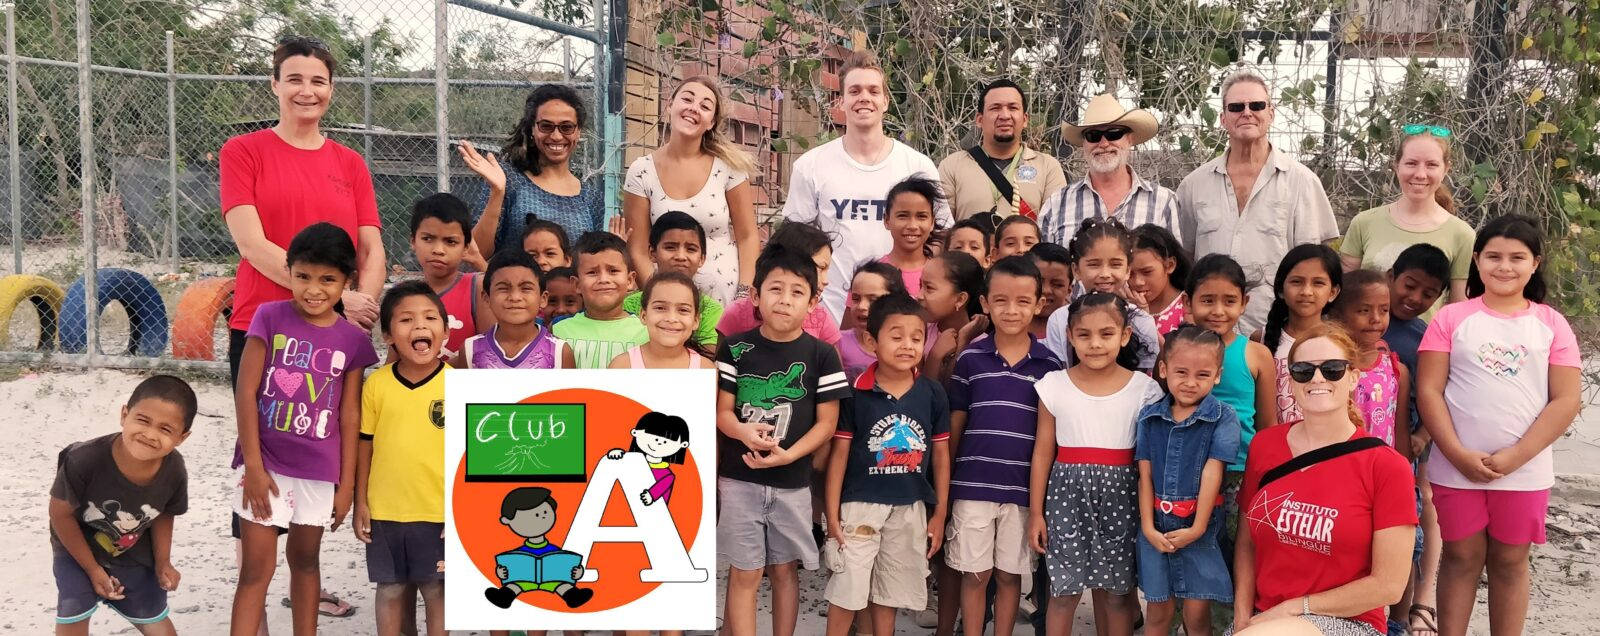 Teachers volunteering with Club A, a non-profit organization that helps underpriviledged kids.